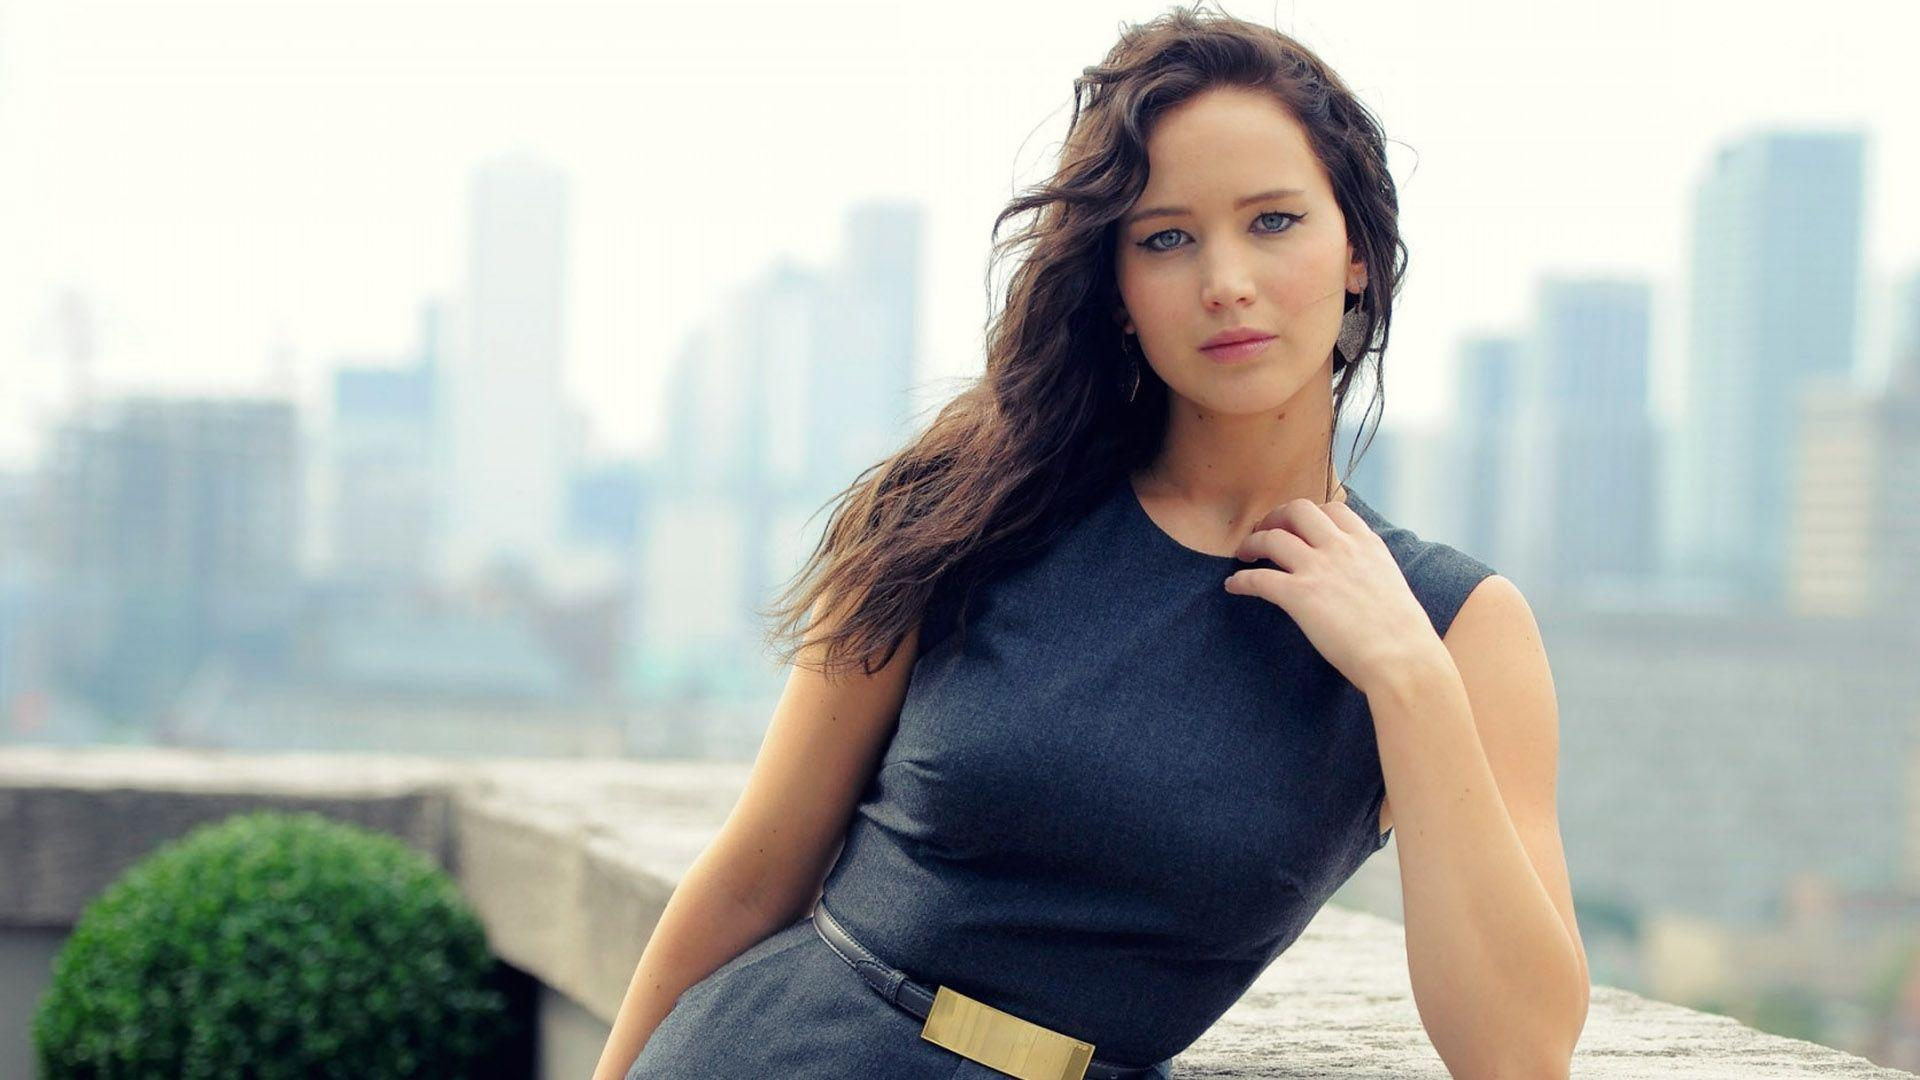 jennifer lawrence hd photo - photo #14